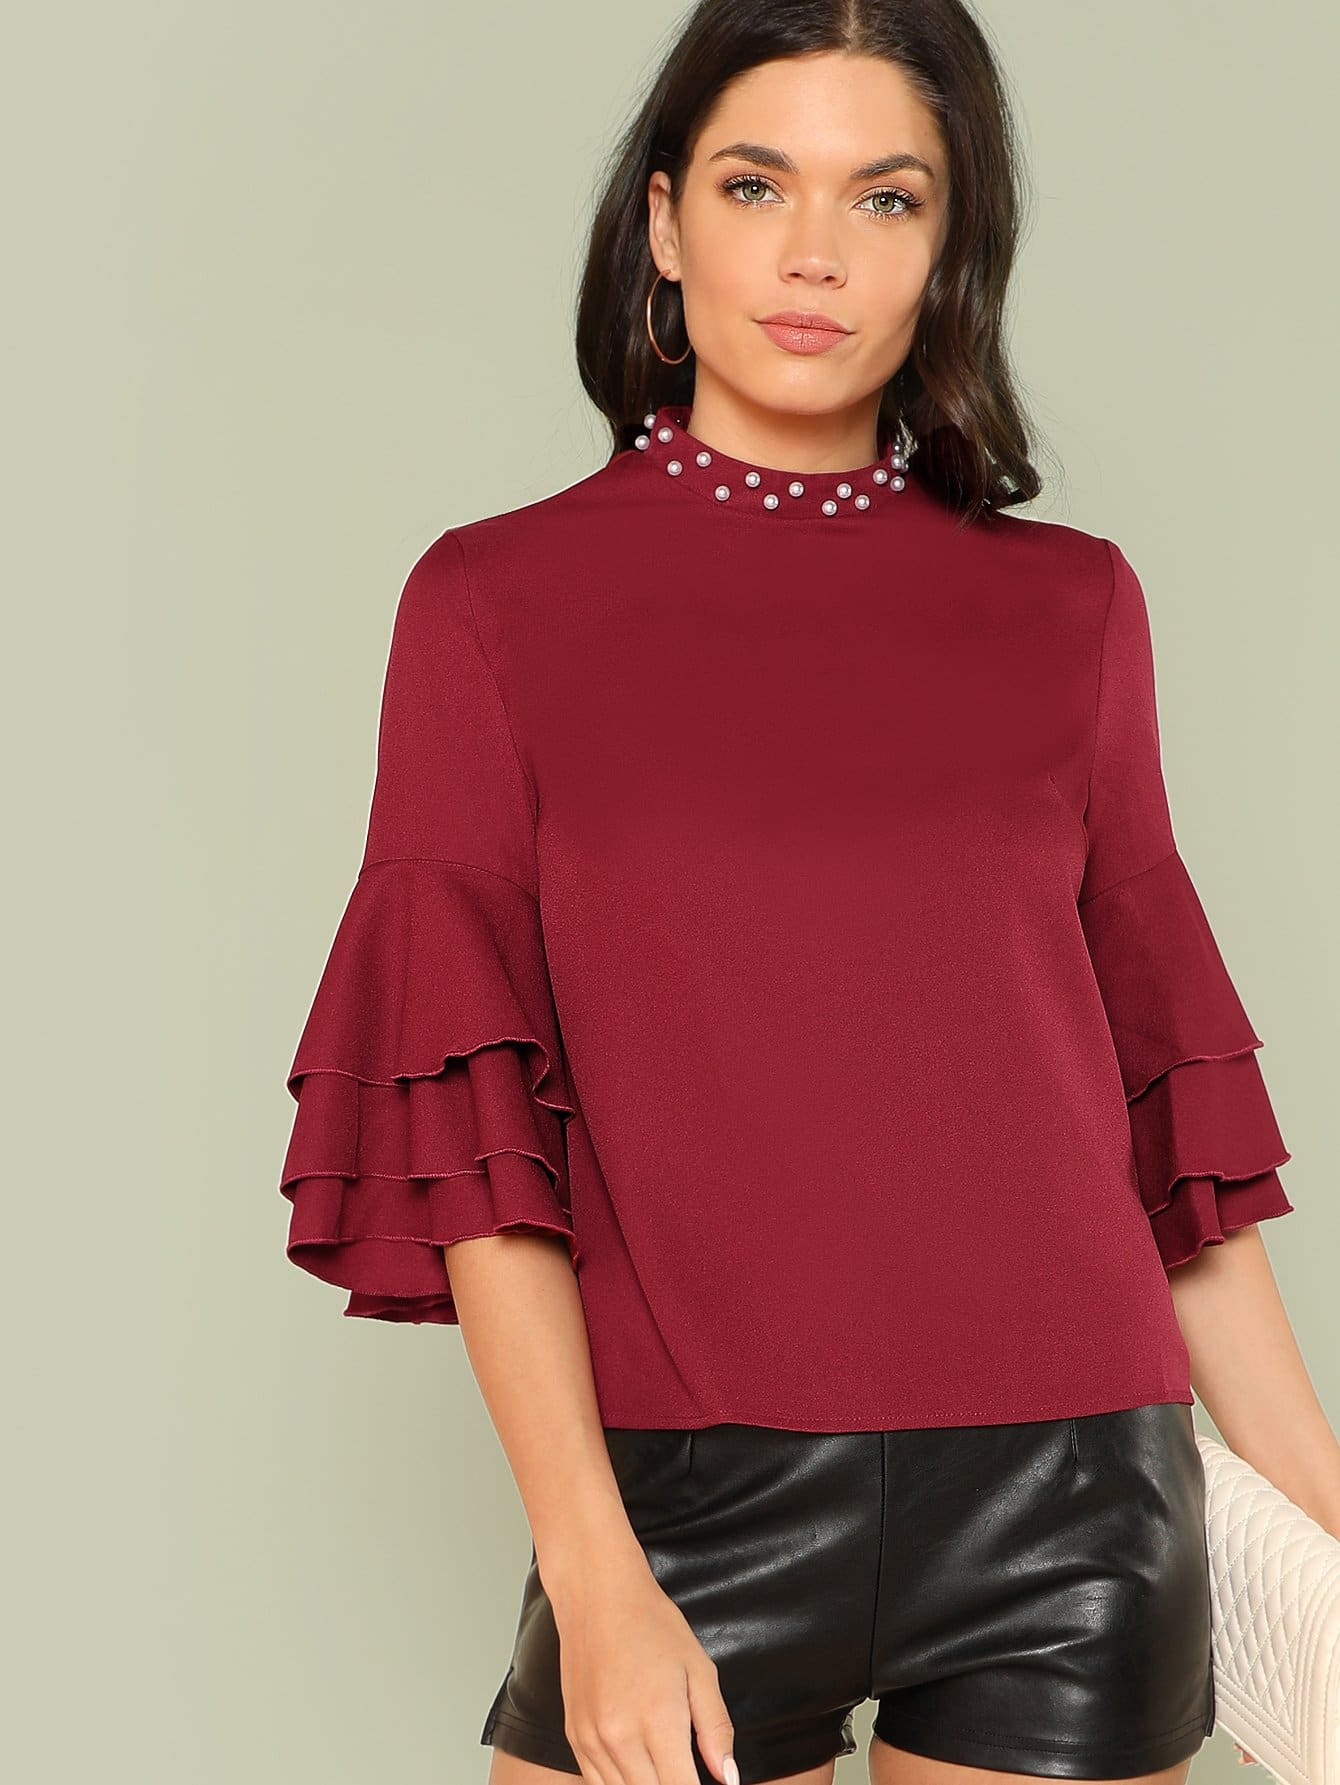 Pearl Detail Layered Flounce Sleeve Top frill layered pearl detail sweatshirt dress